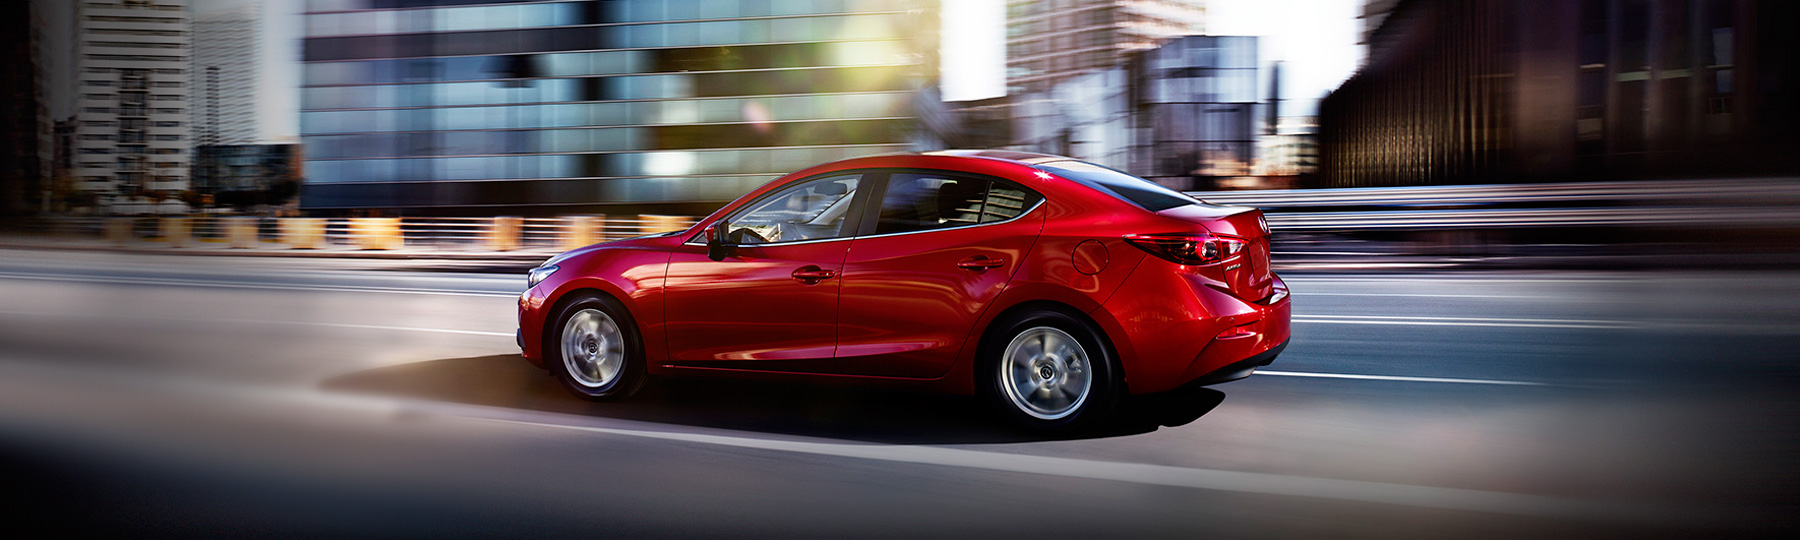 Order your vehicle - Angevaare Mazda